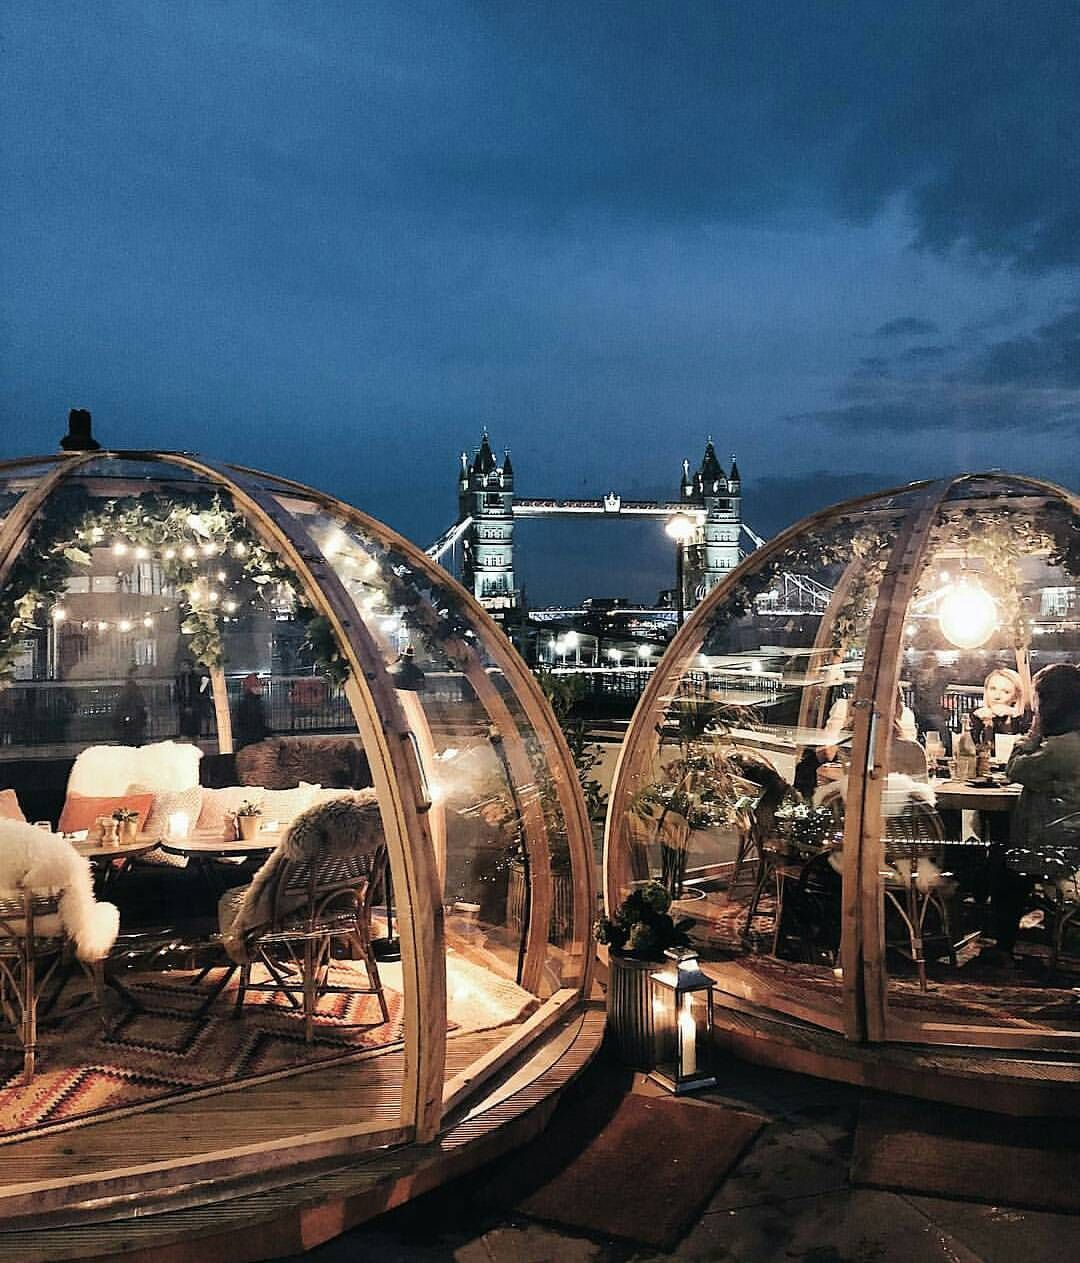 """4,430 Likes, 110 Comments - AFAR (@afarmedia) on Instagram: """"Wouldn't you love to see the lights of London from your own cozy igloo at Coppa Club? We certainly…"""""""